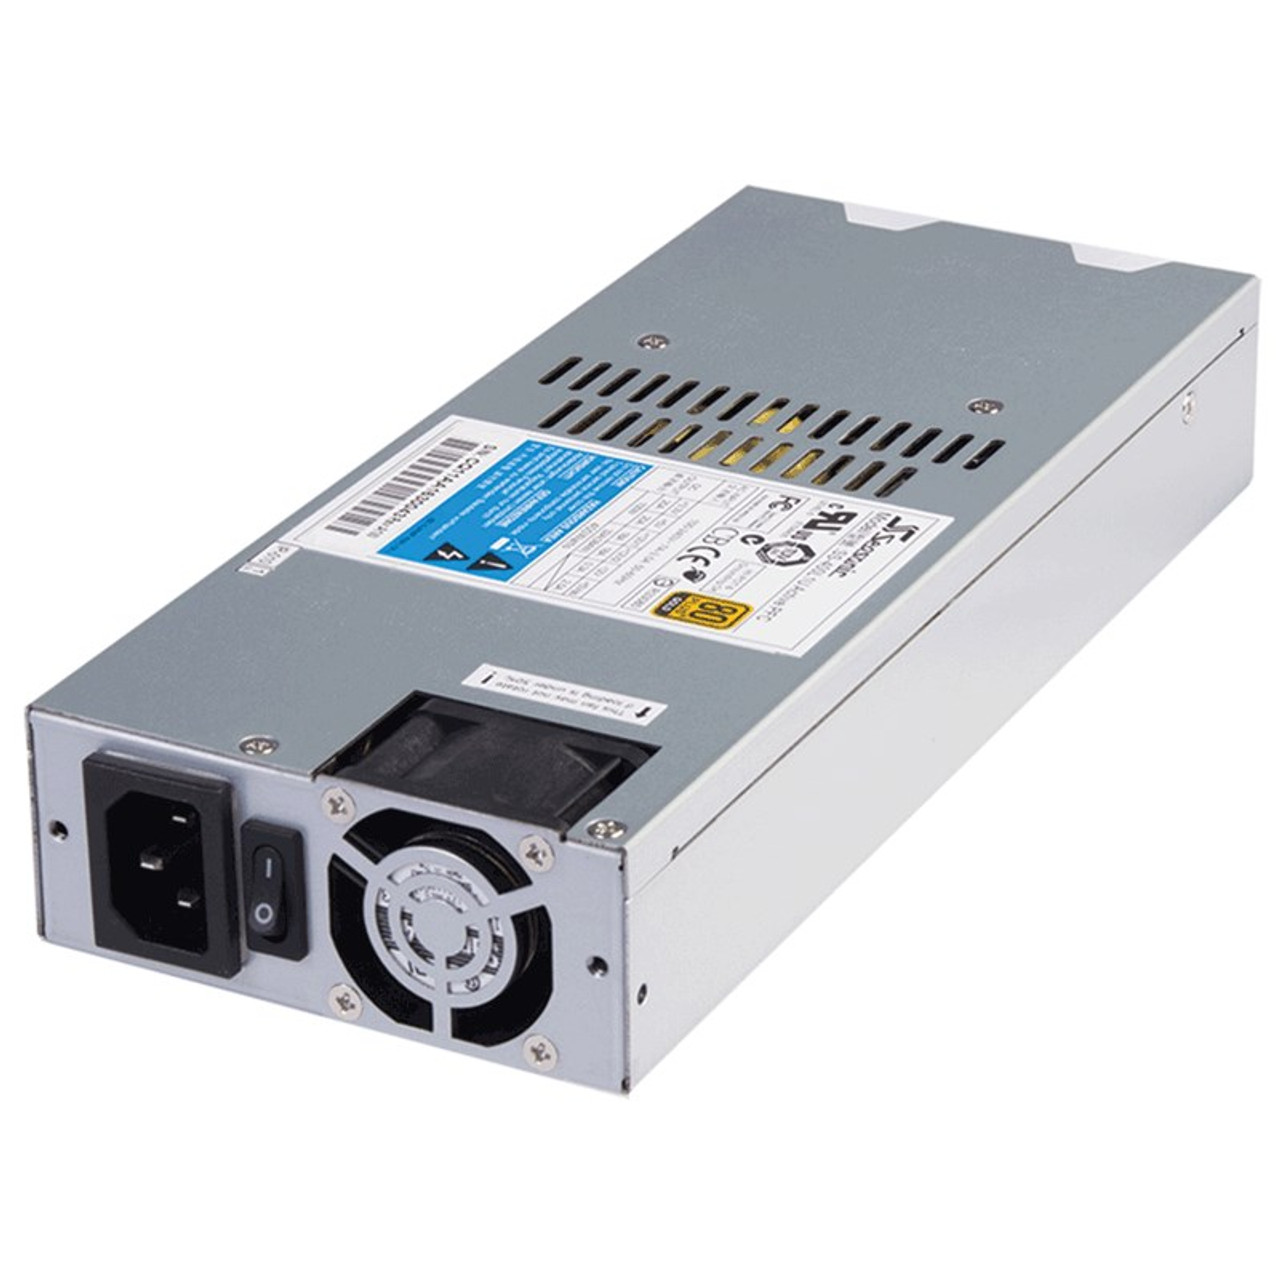 Product image for Seasonic SS-400L1U 400W 80+ Gold APFC 1U Modular Power Supply | CX Computer Superstore